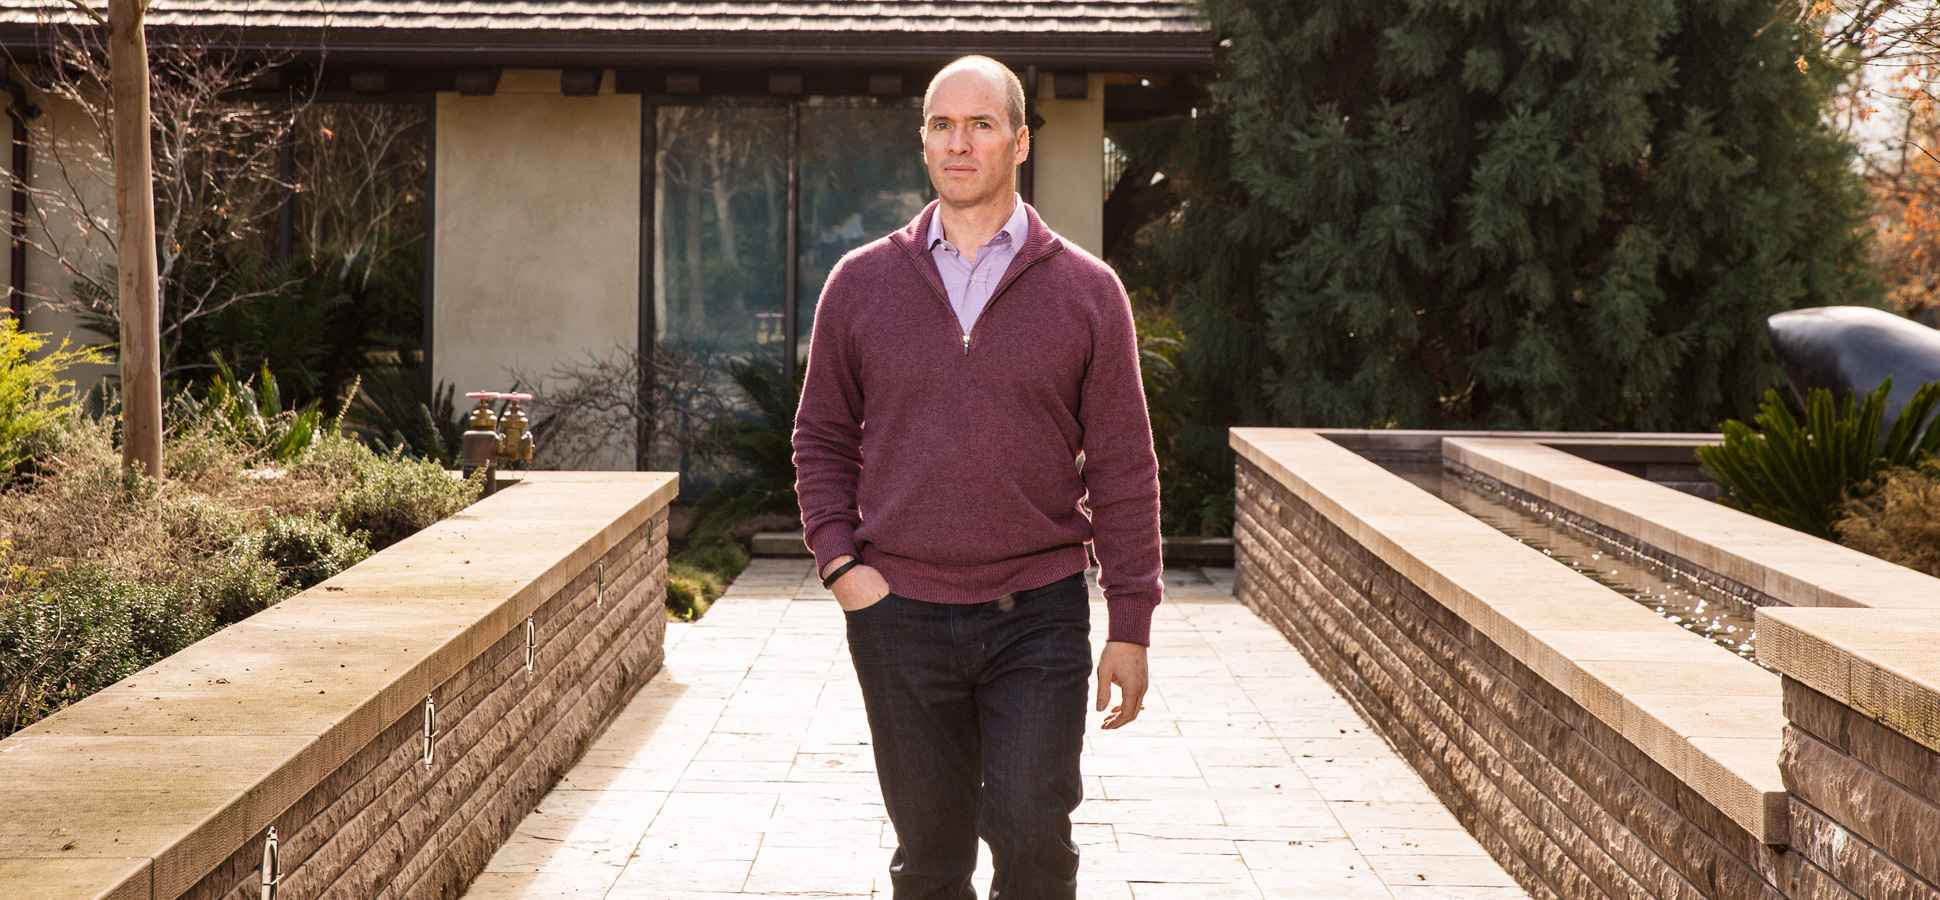 Here's how @bhorowitz thinks about bad ideas